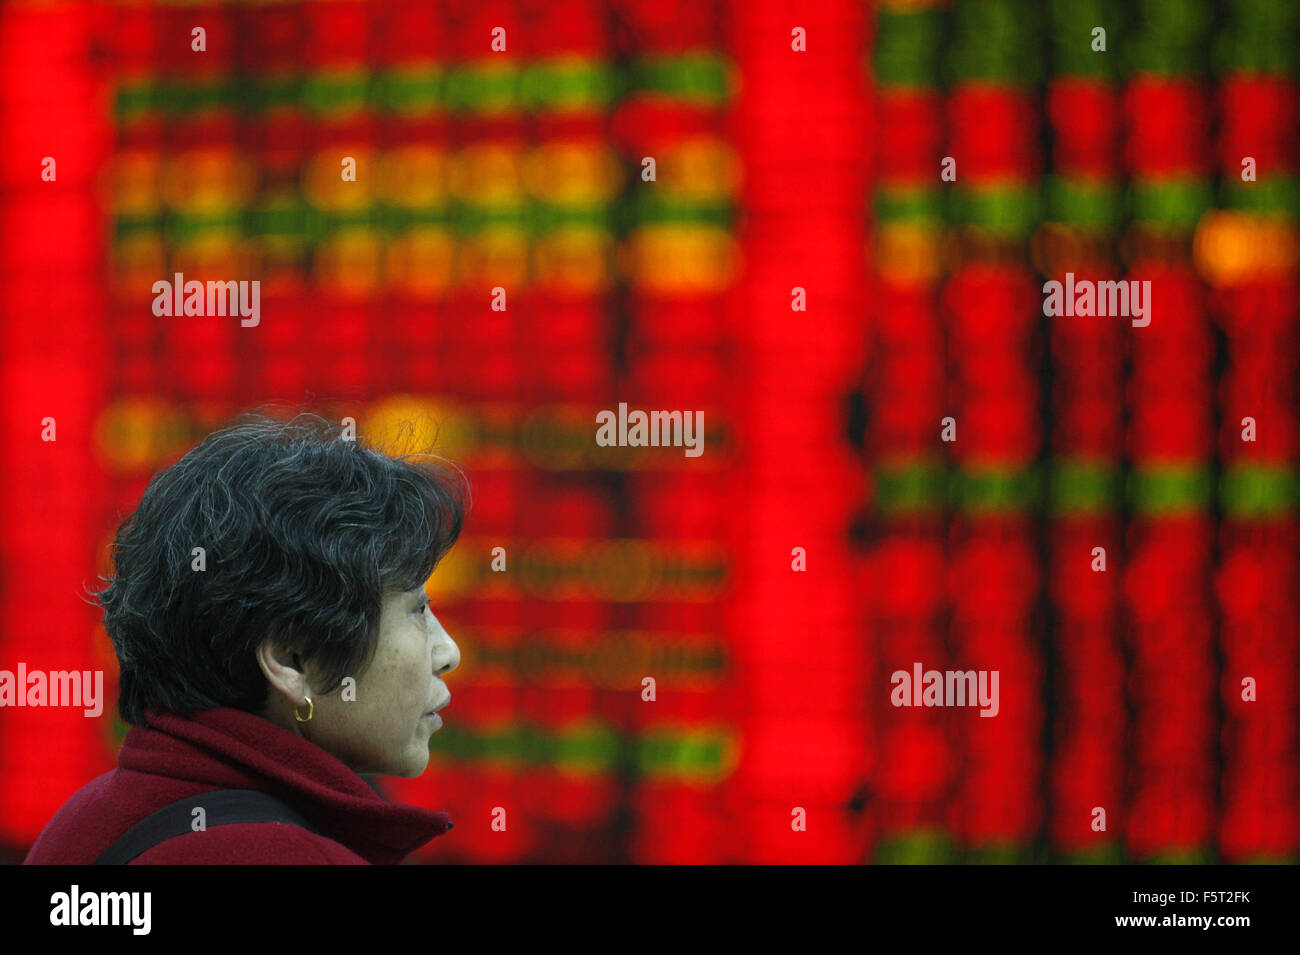 An investor watchs electric board in a stock market in Huaibei, Anhui province, east China on 9th November 2015. - Stock Image